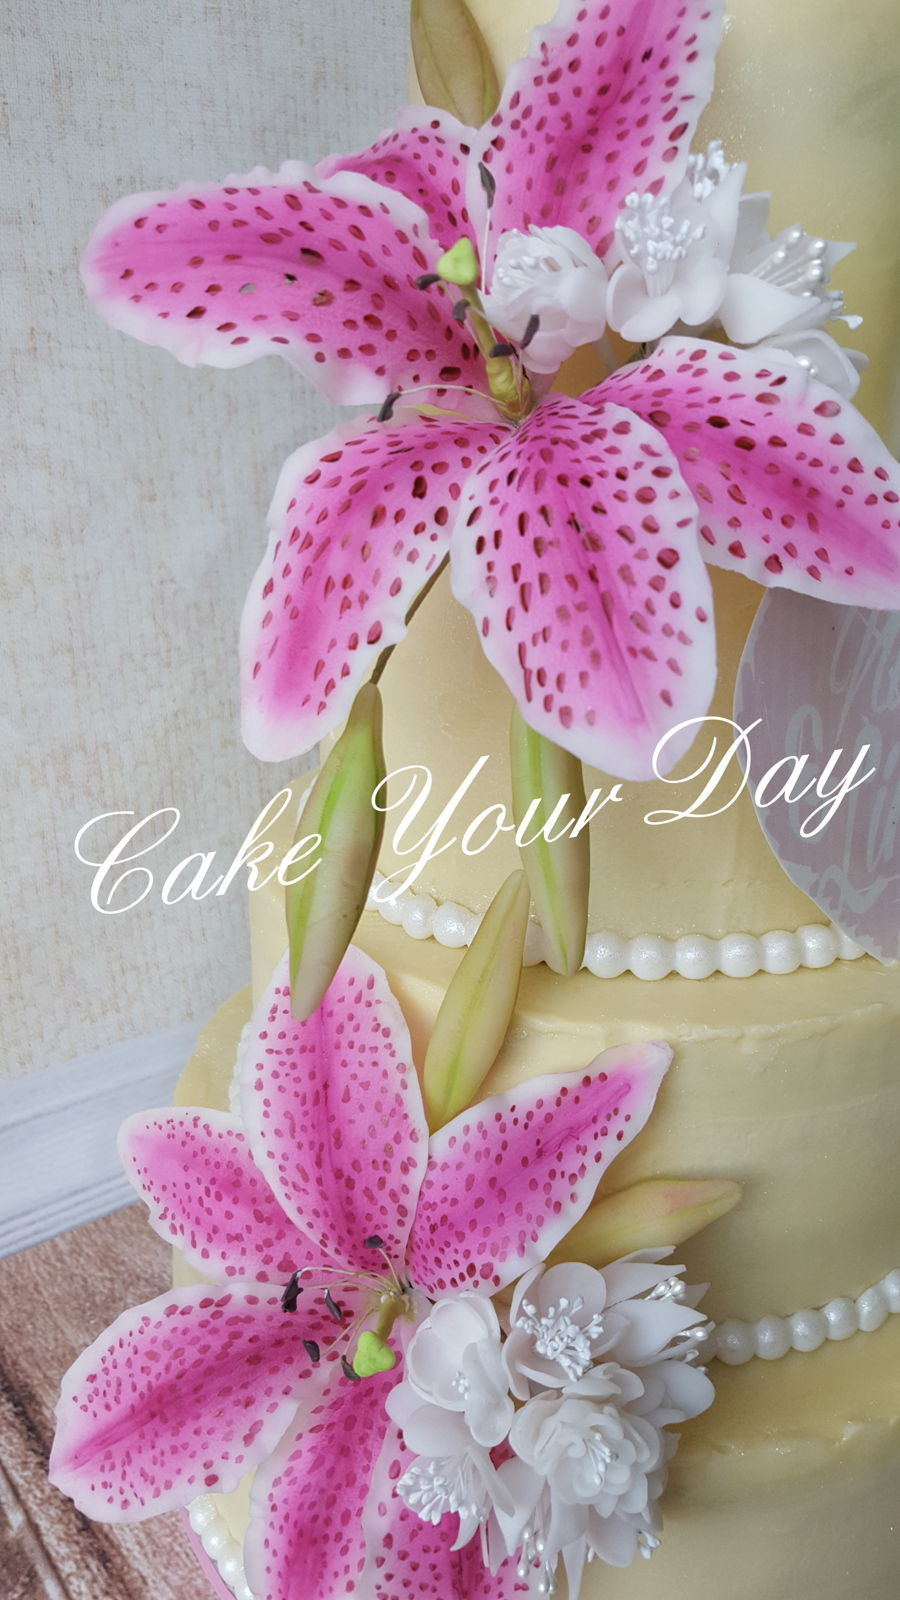 Tiger Lily Wedding Cake on Cake Central